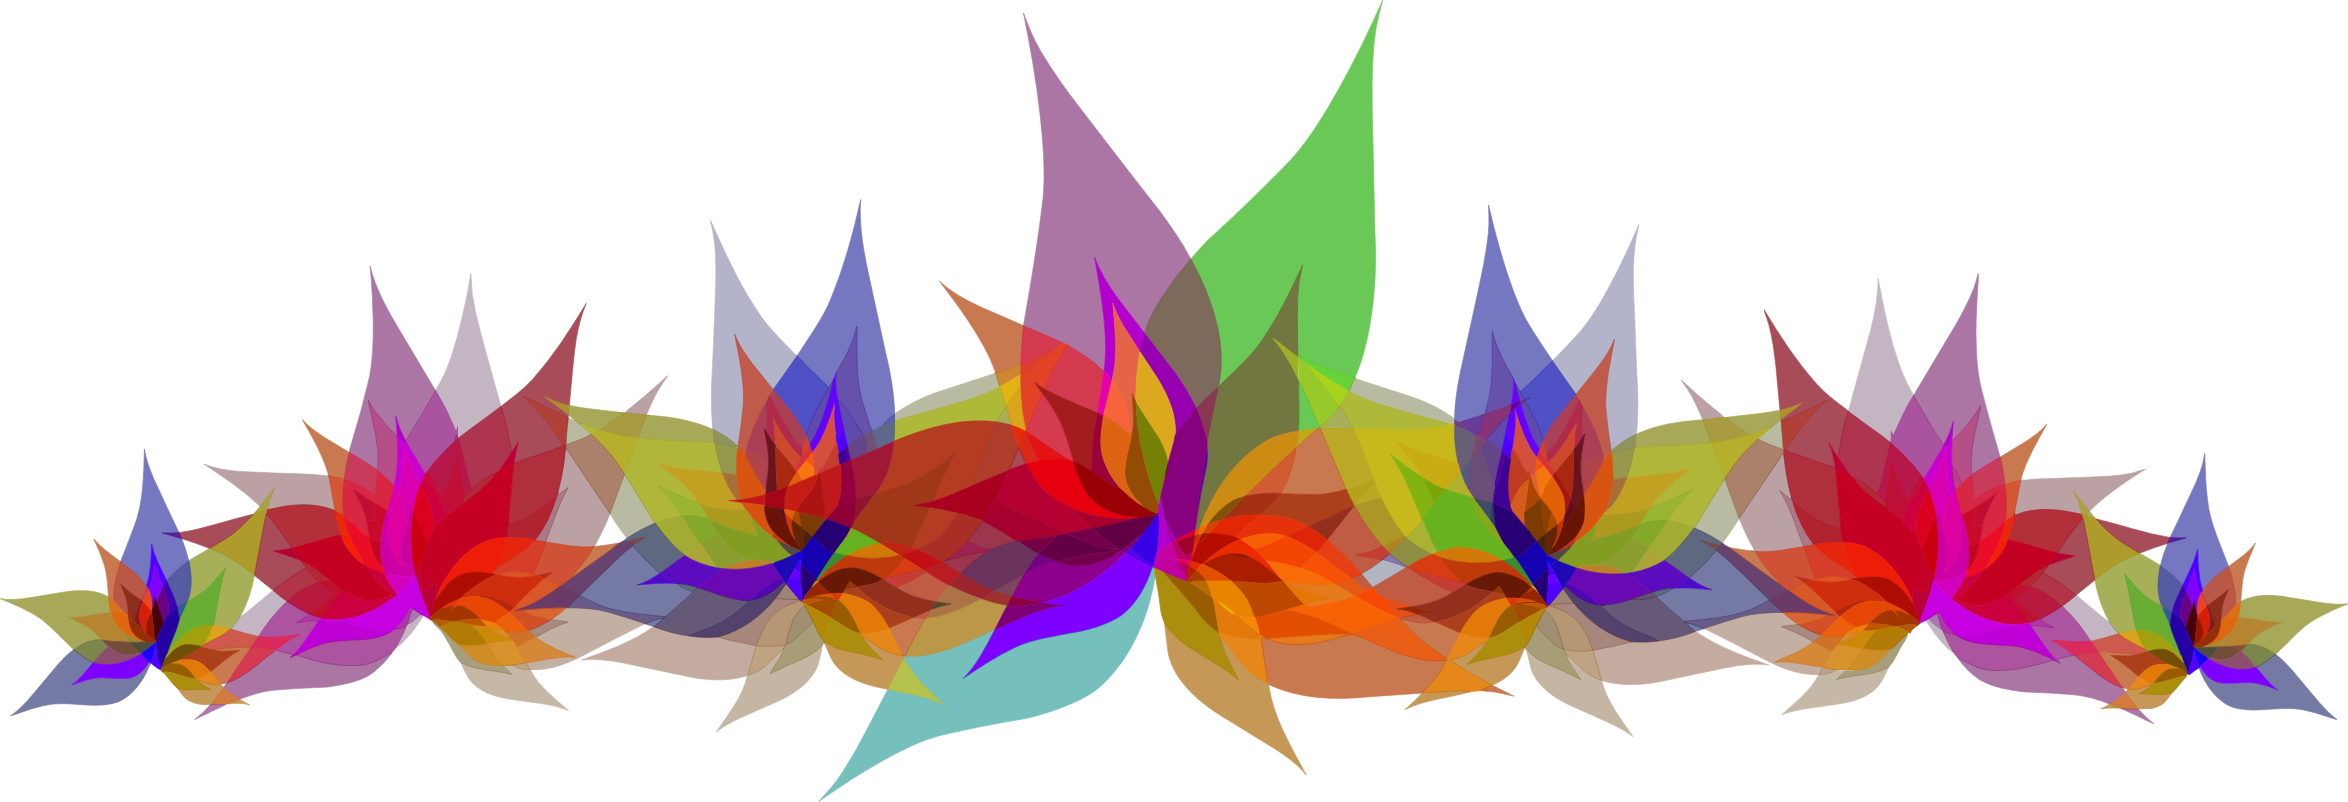 Abstract flower png. Flowers icons free and